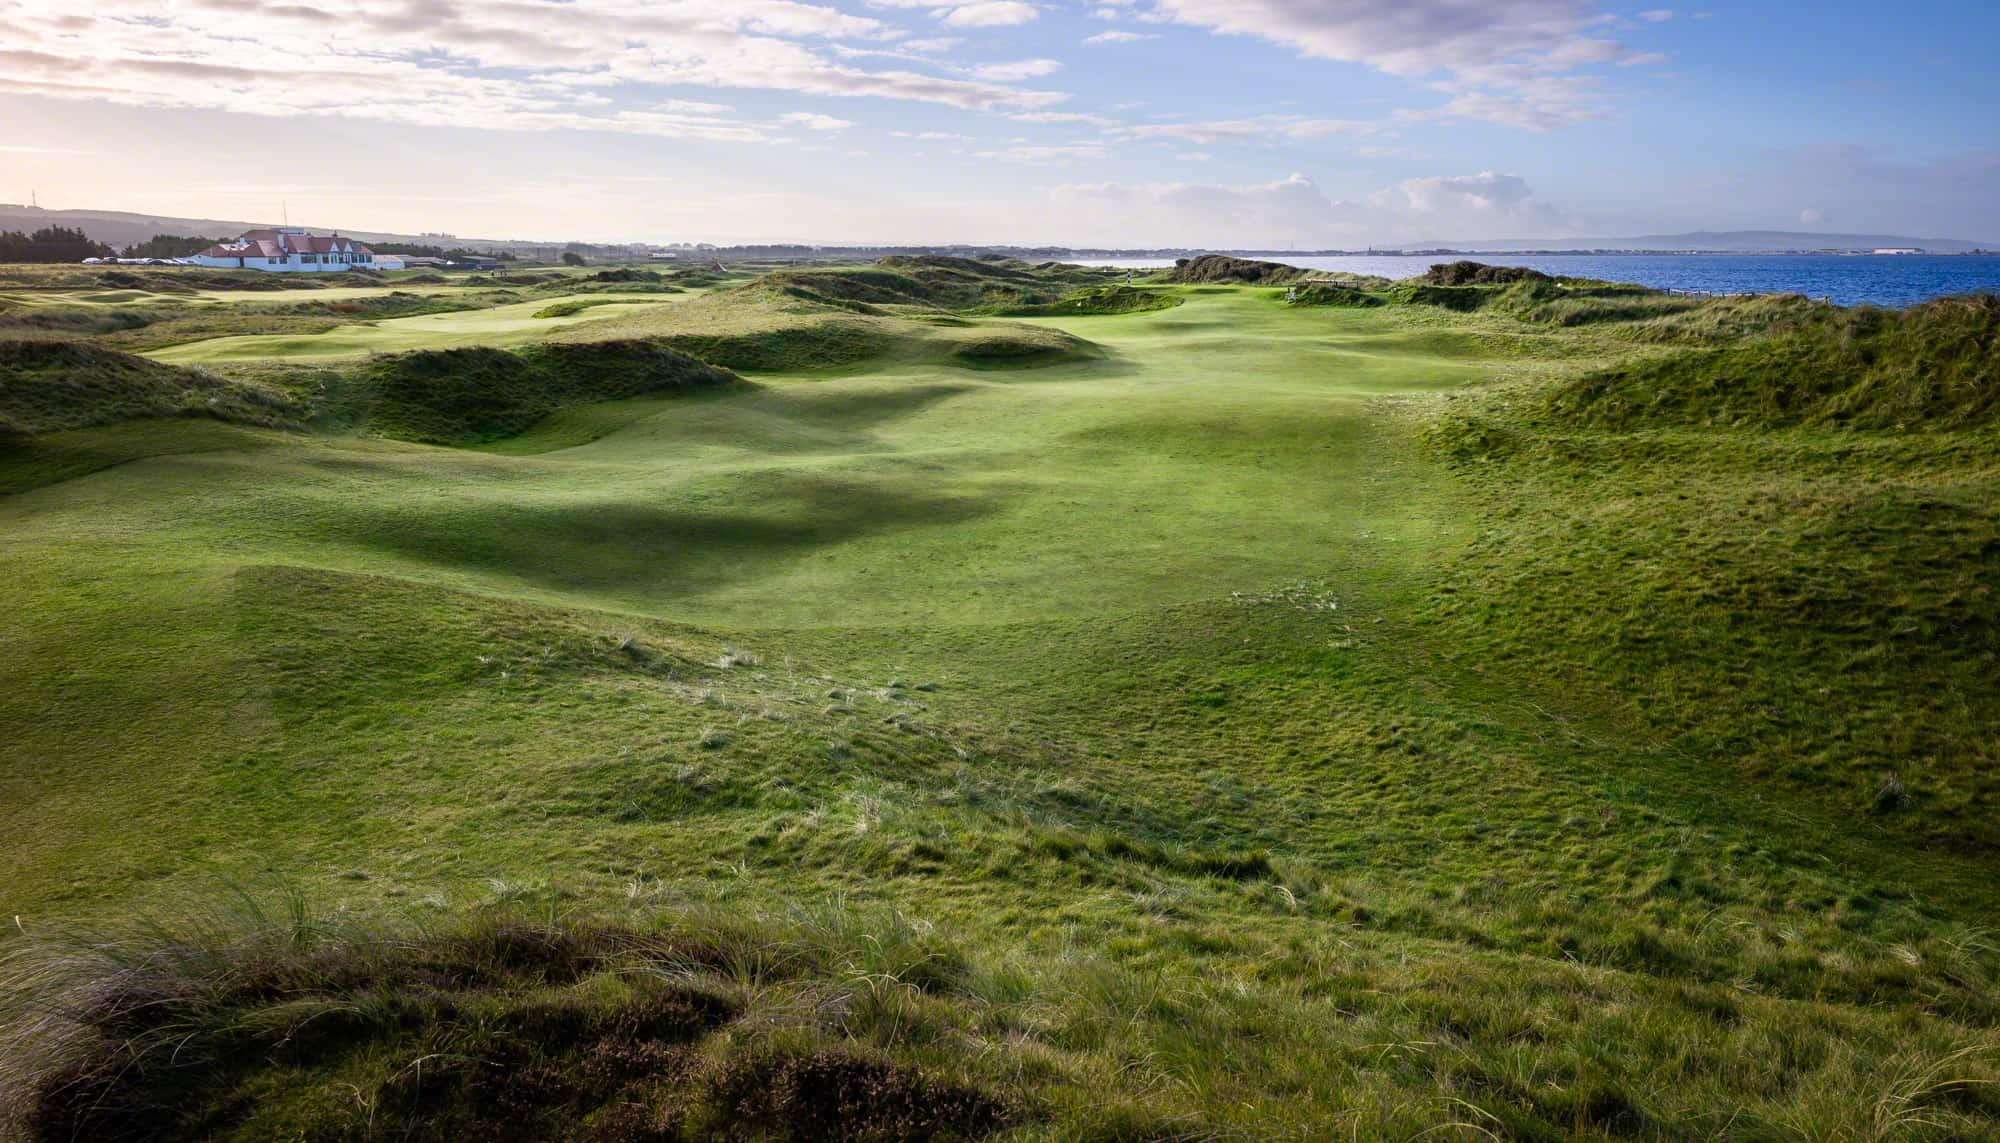 The Gailes Links's scenic gardens within magnificent Scotland.